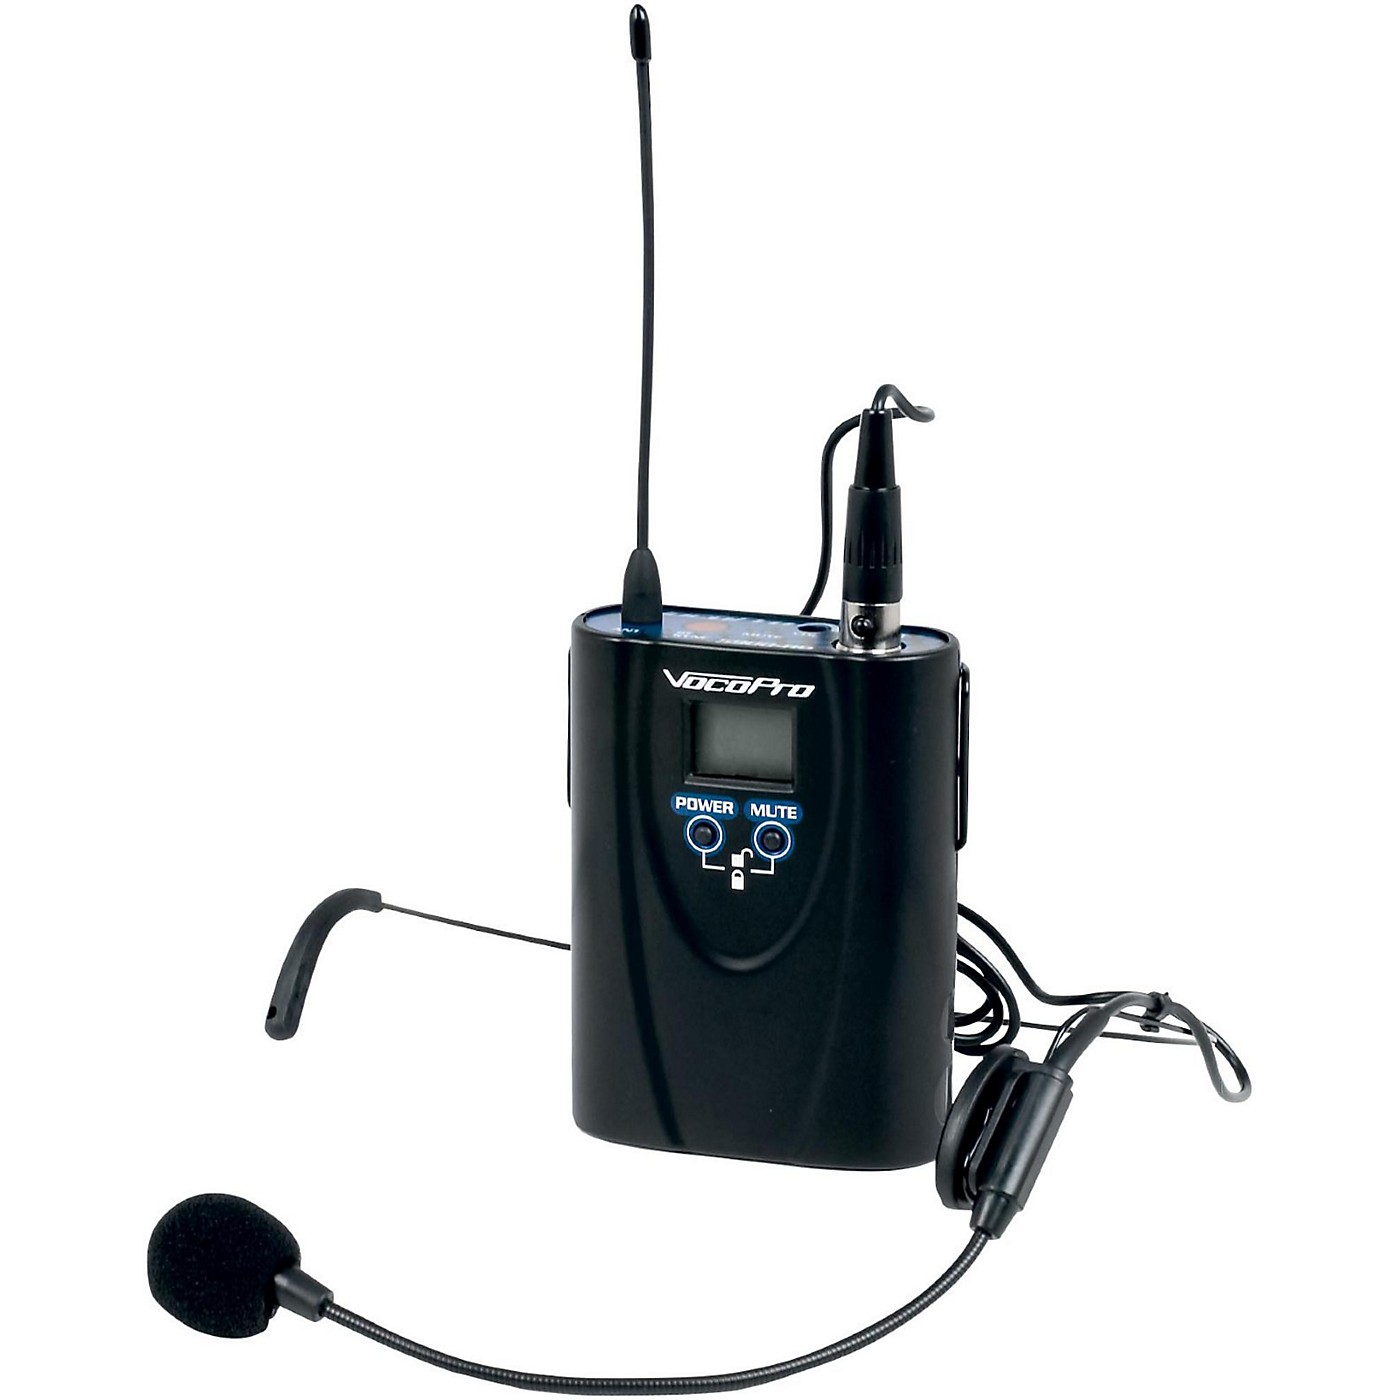 Vocopro Optional Headset Bodypack for the UHF-5900 Wireless Microphone Systems thumbnail